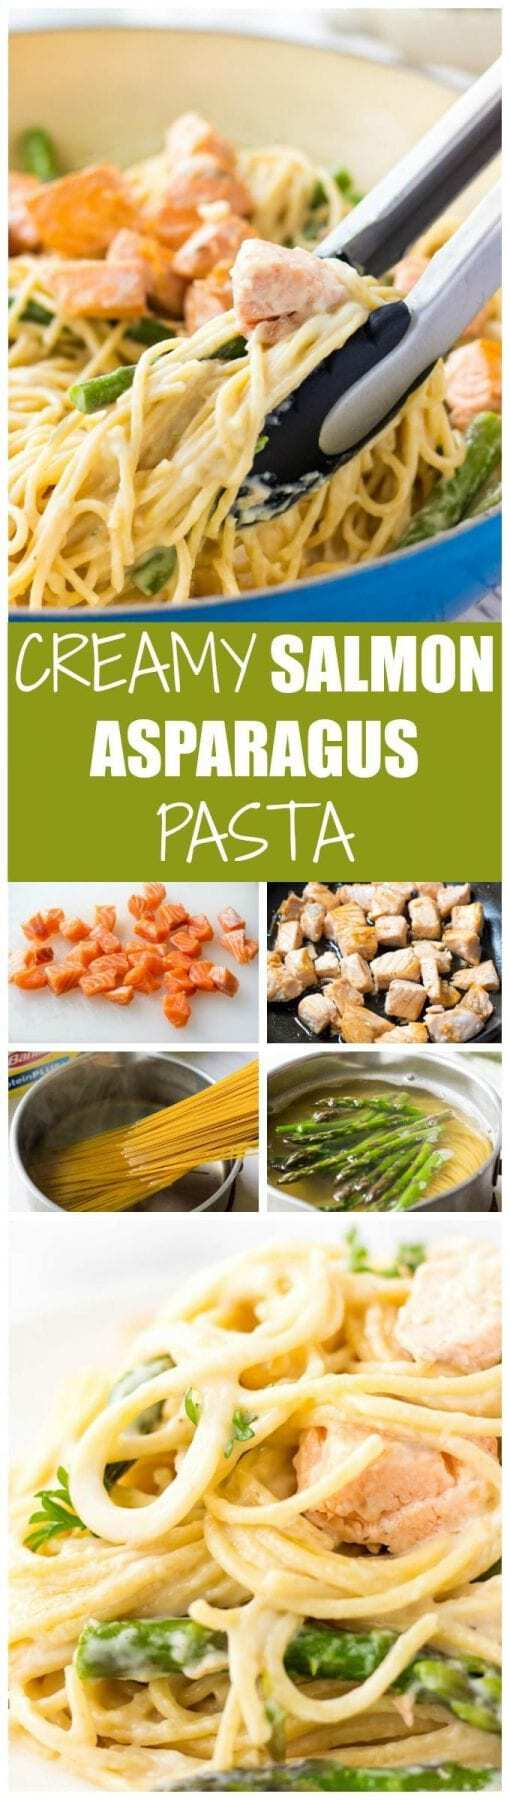 Looking for easy dinner recipes? This CREAMY SALMON ASPARAGUS PASTA is packed with comforting flavor. Easy to make and so delicious!